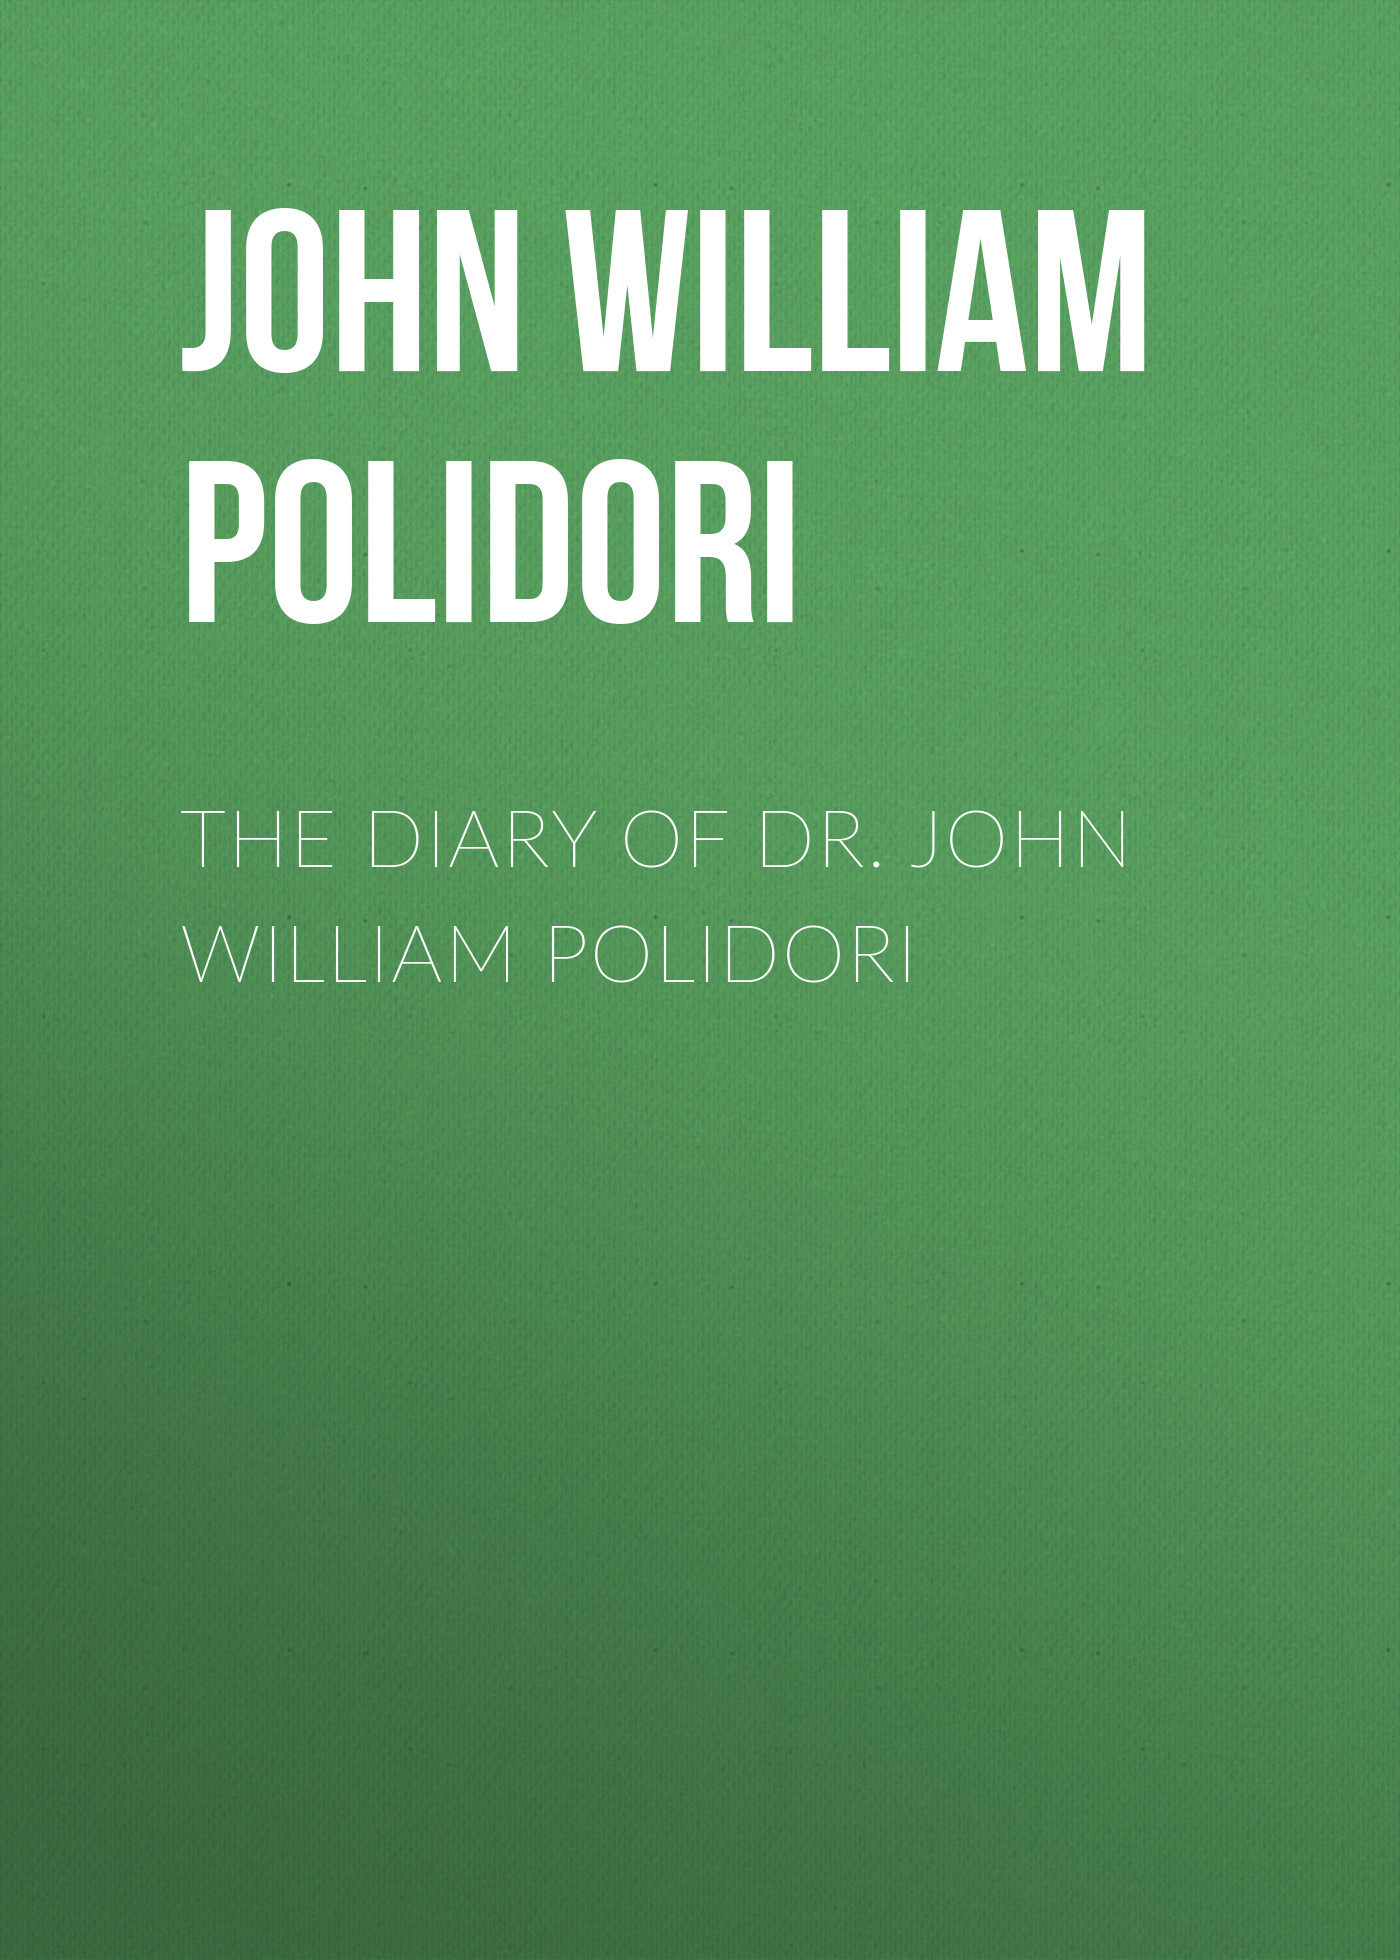 John William Polidori The Diary of Dr. John William Polidori